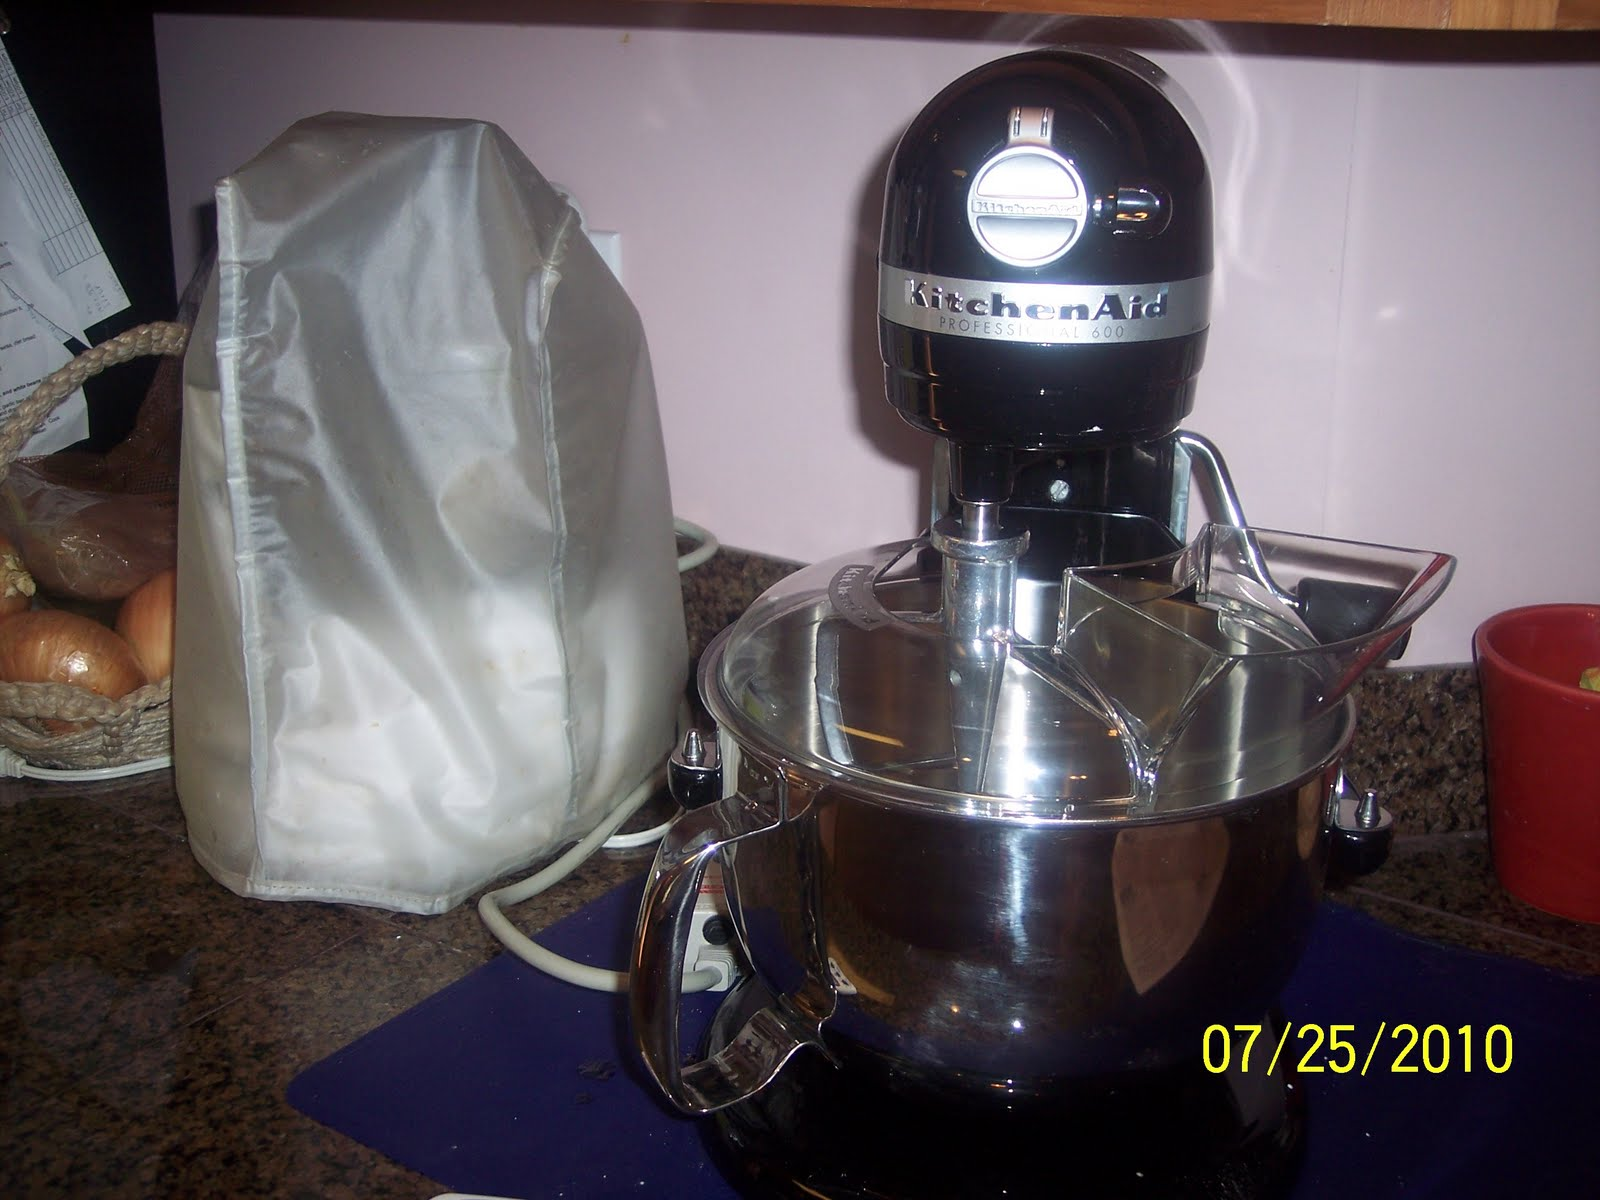 Kitchen Aid Mixers Explained